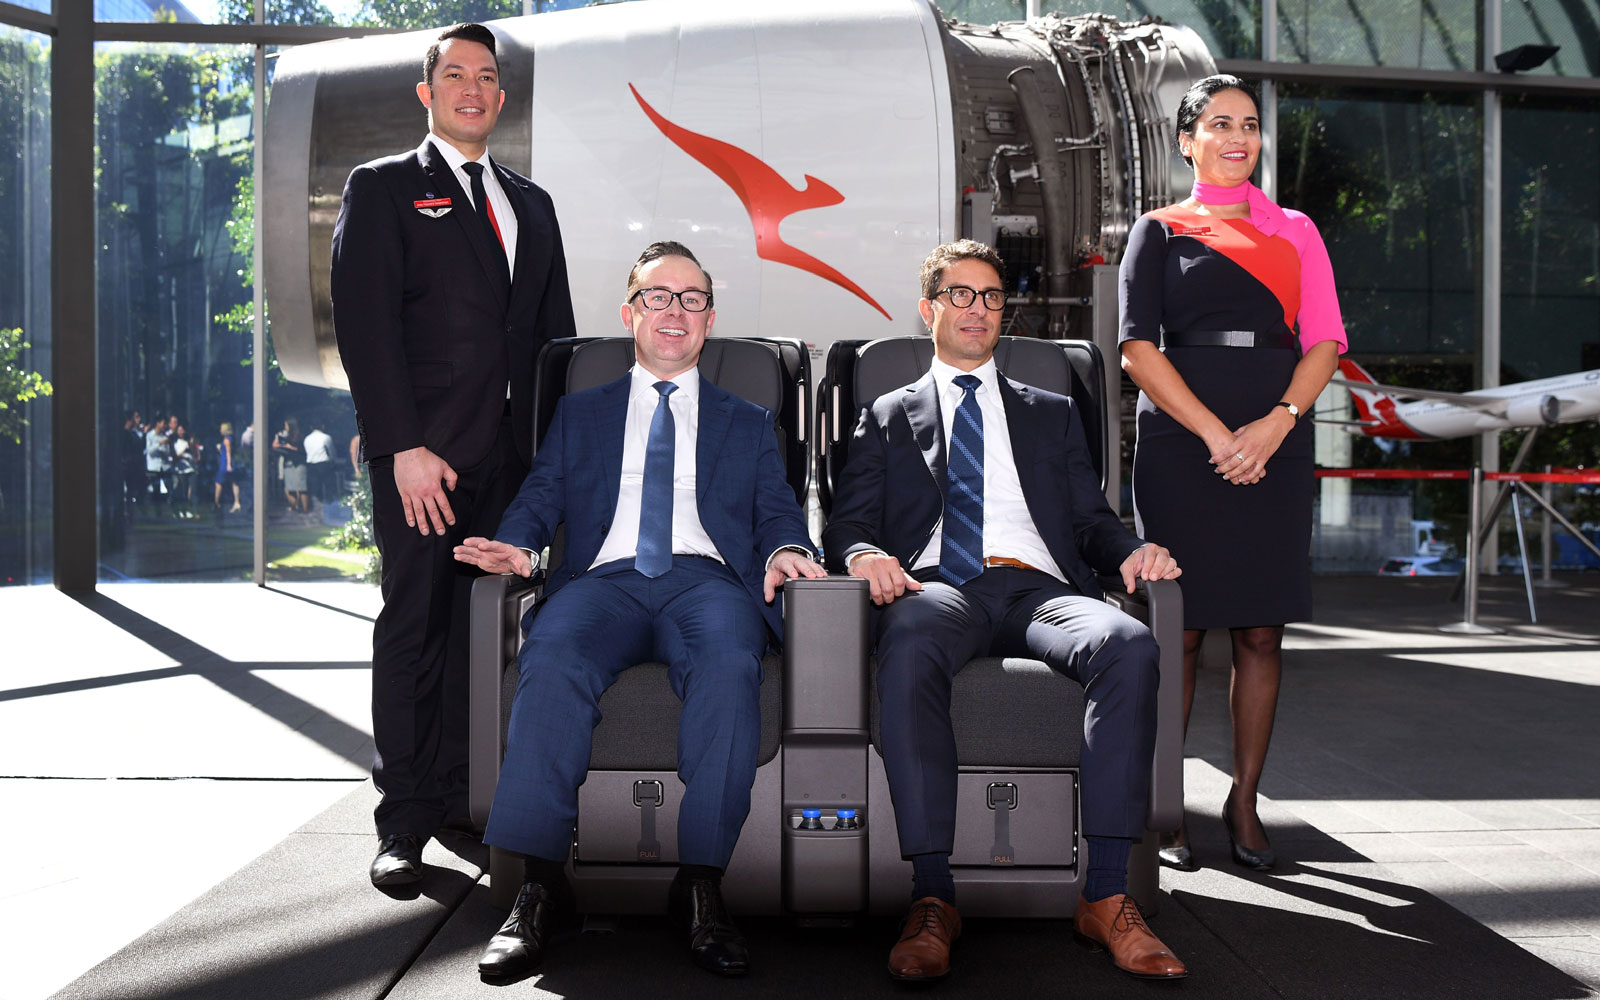 Qantas' New Premium Economy Seats Will Cradle You Like a Baby